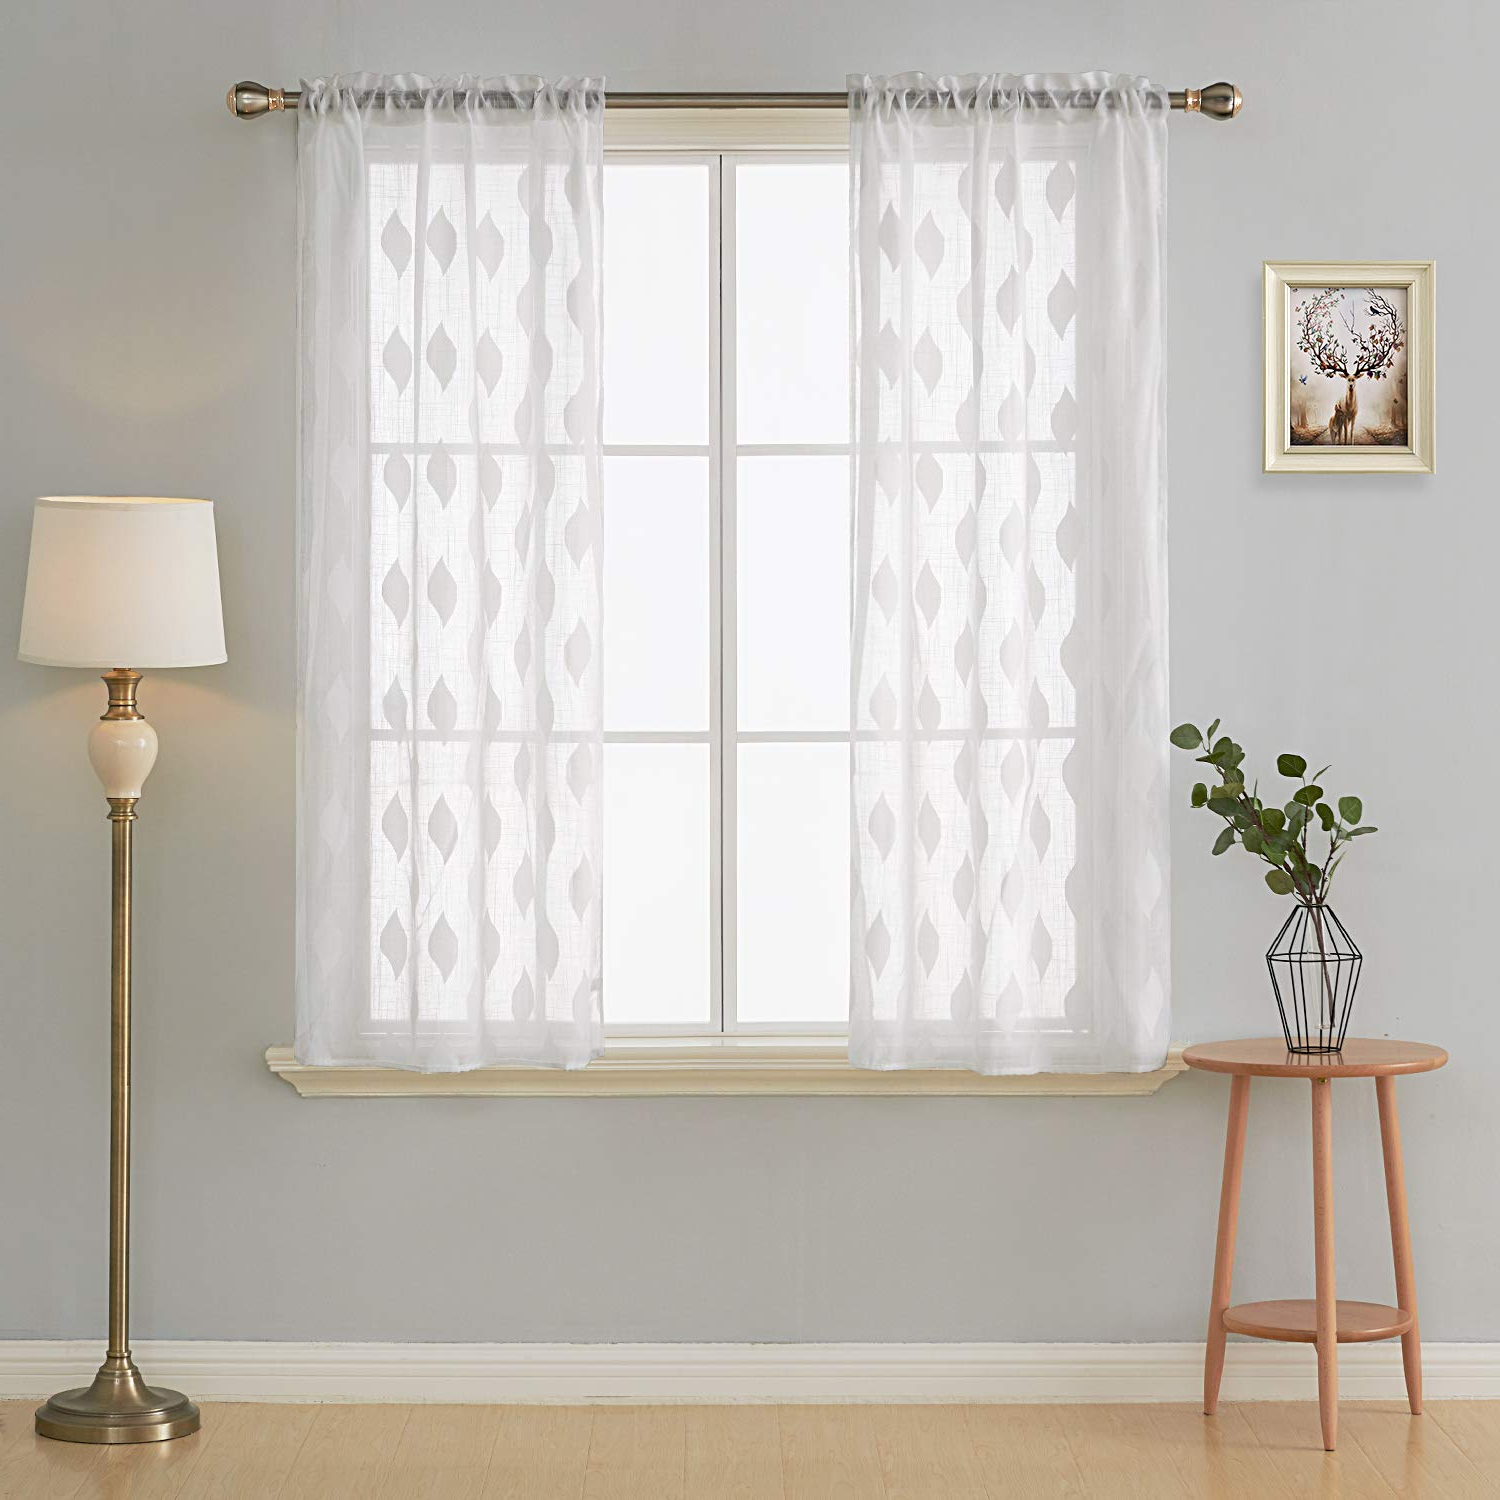 Trendy Deconovo Decorative White Sheer Bedroom Curtains Leaf Pattern Elegant Embroidery Sheer Panels For Kids Room 38x63 Inch 2 Panels Pertaining To Kida Embroidered Sheer Curtain Panels (View 16 of 20)